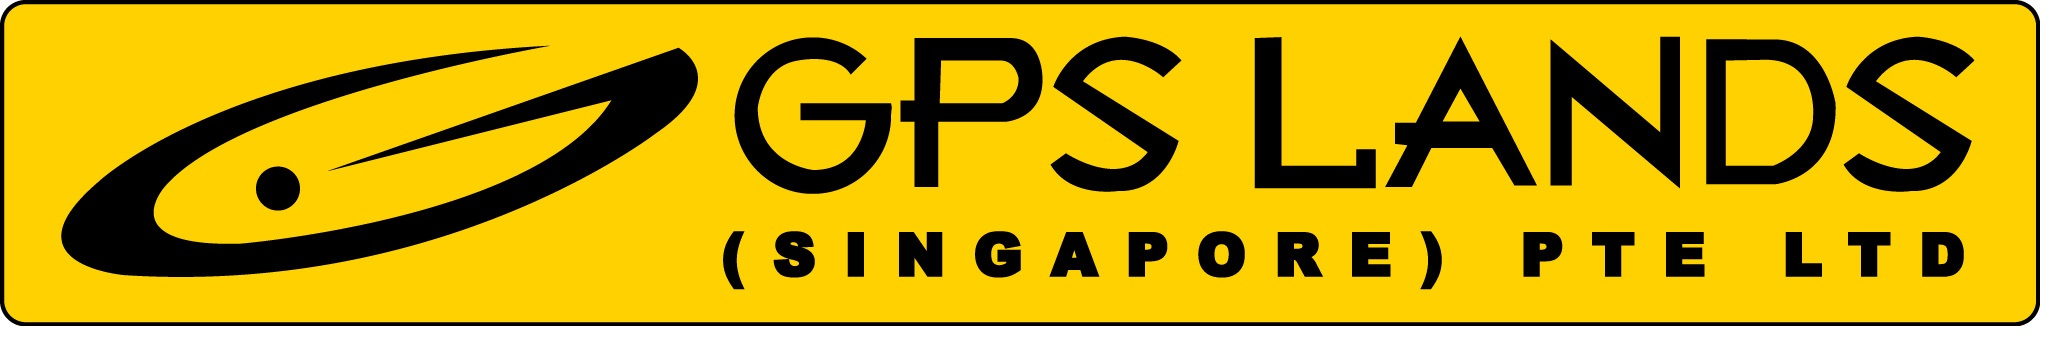 GPS Lands - Singapore and SE Asia